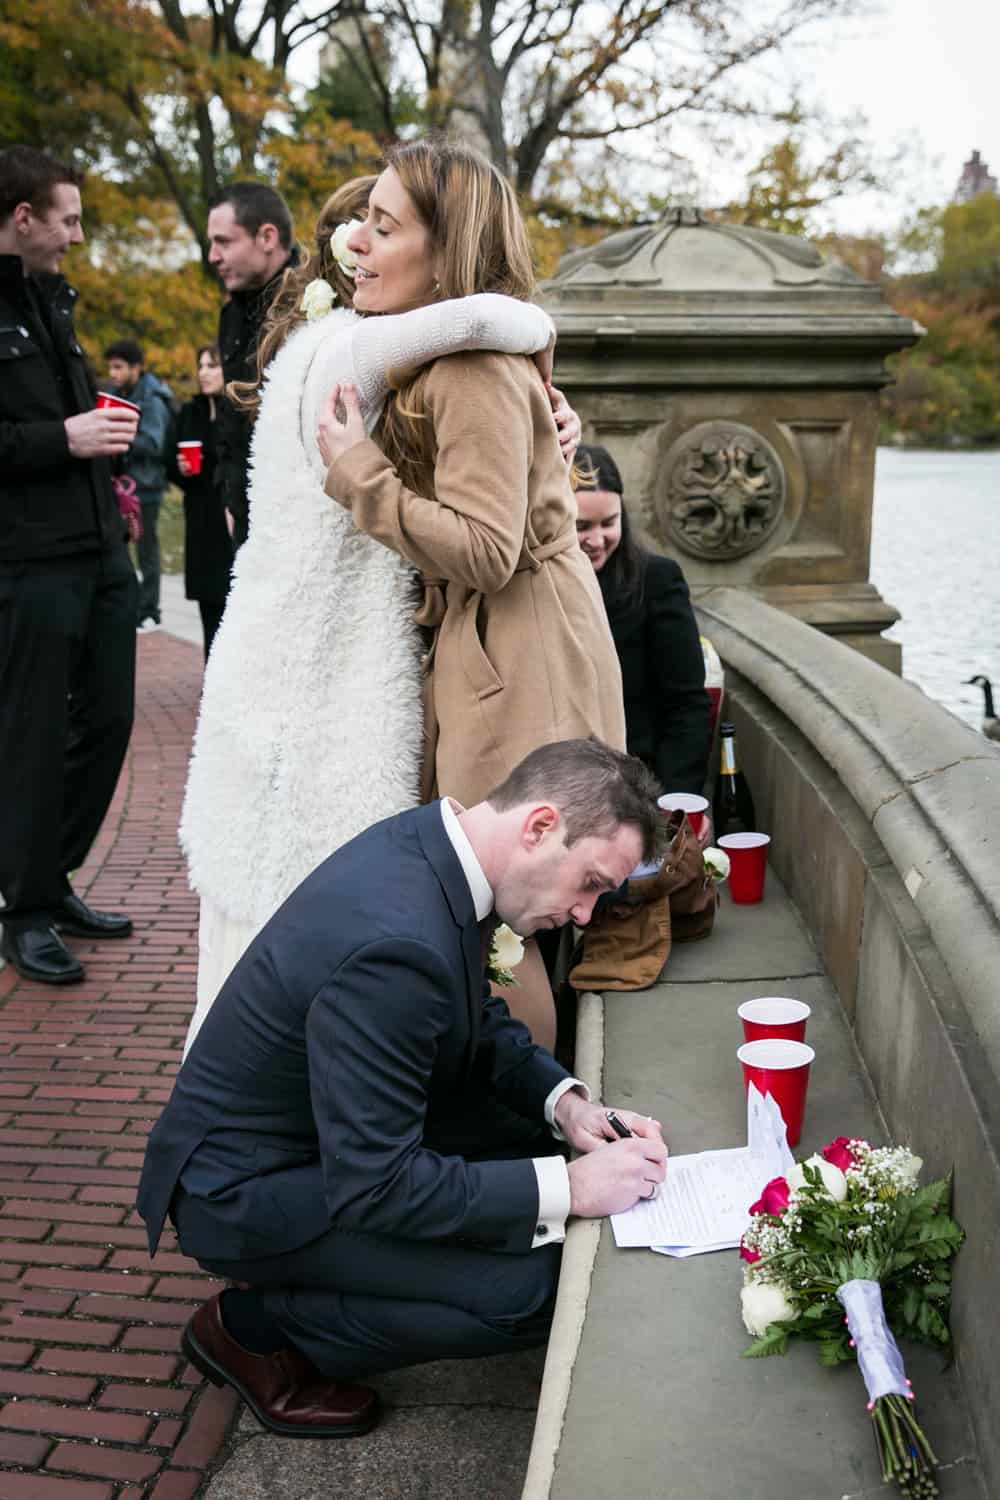 Bride hugging guest and groom signing marriage license on stone seat